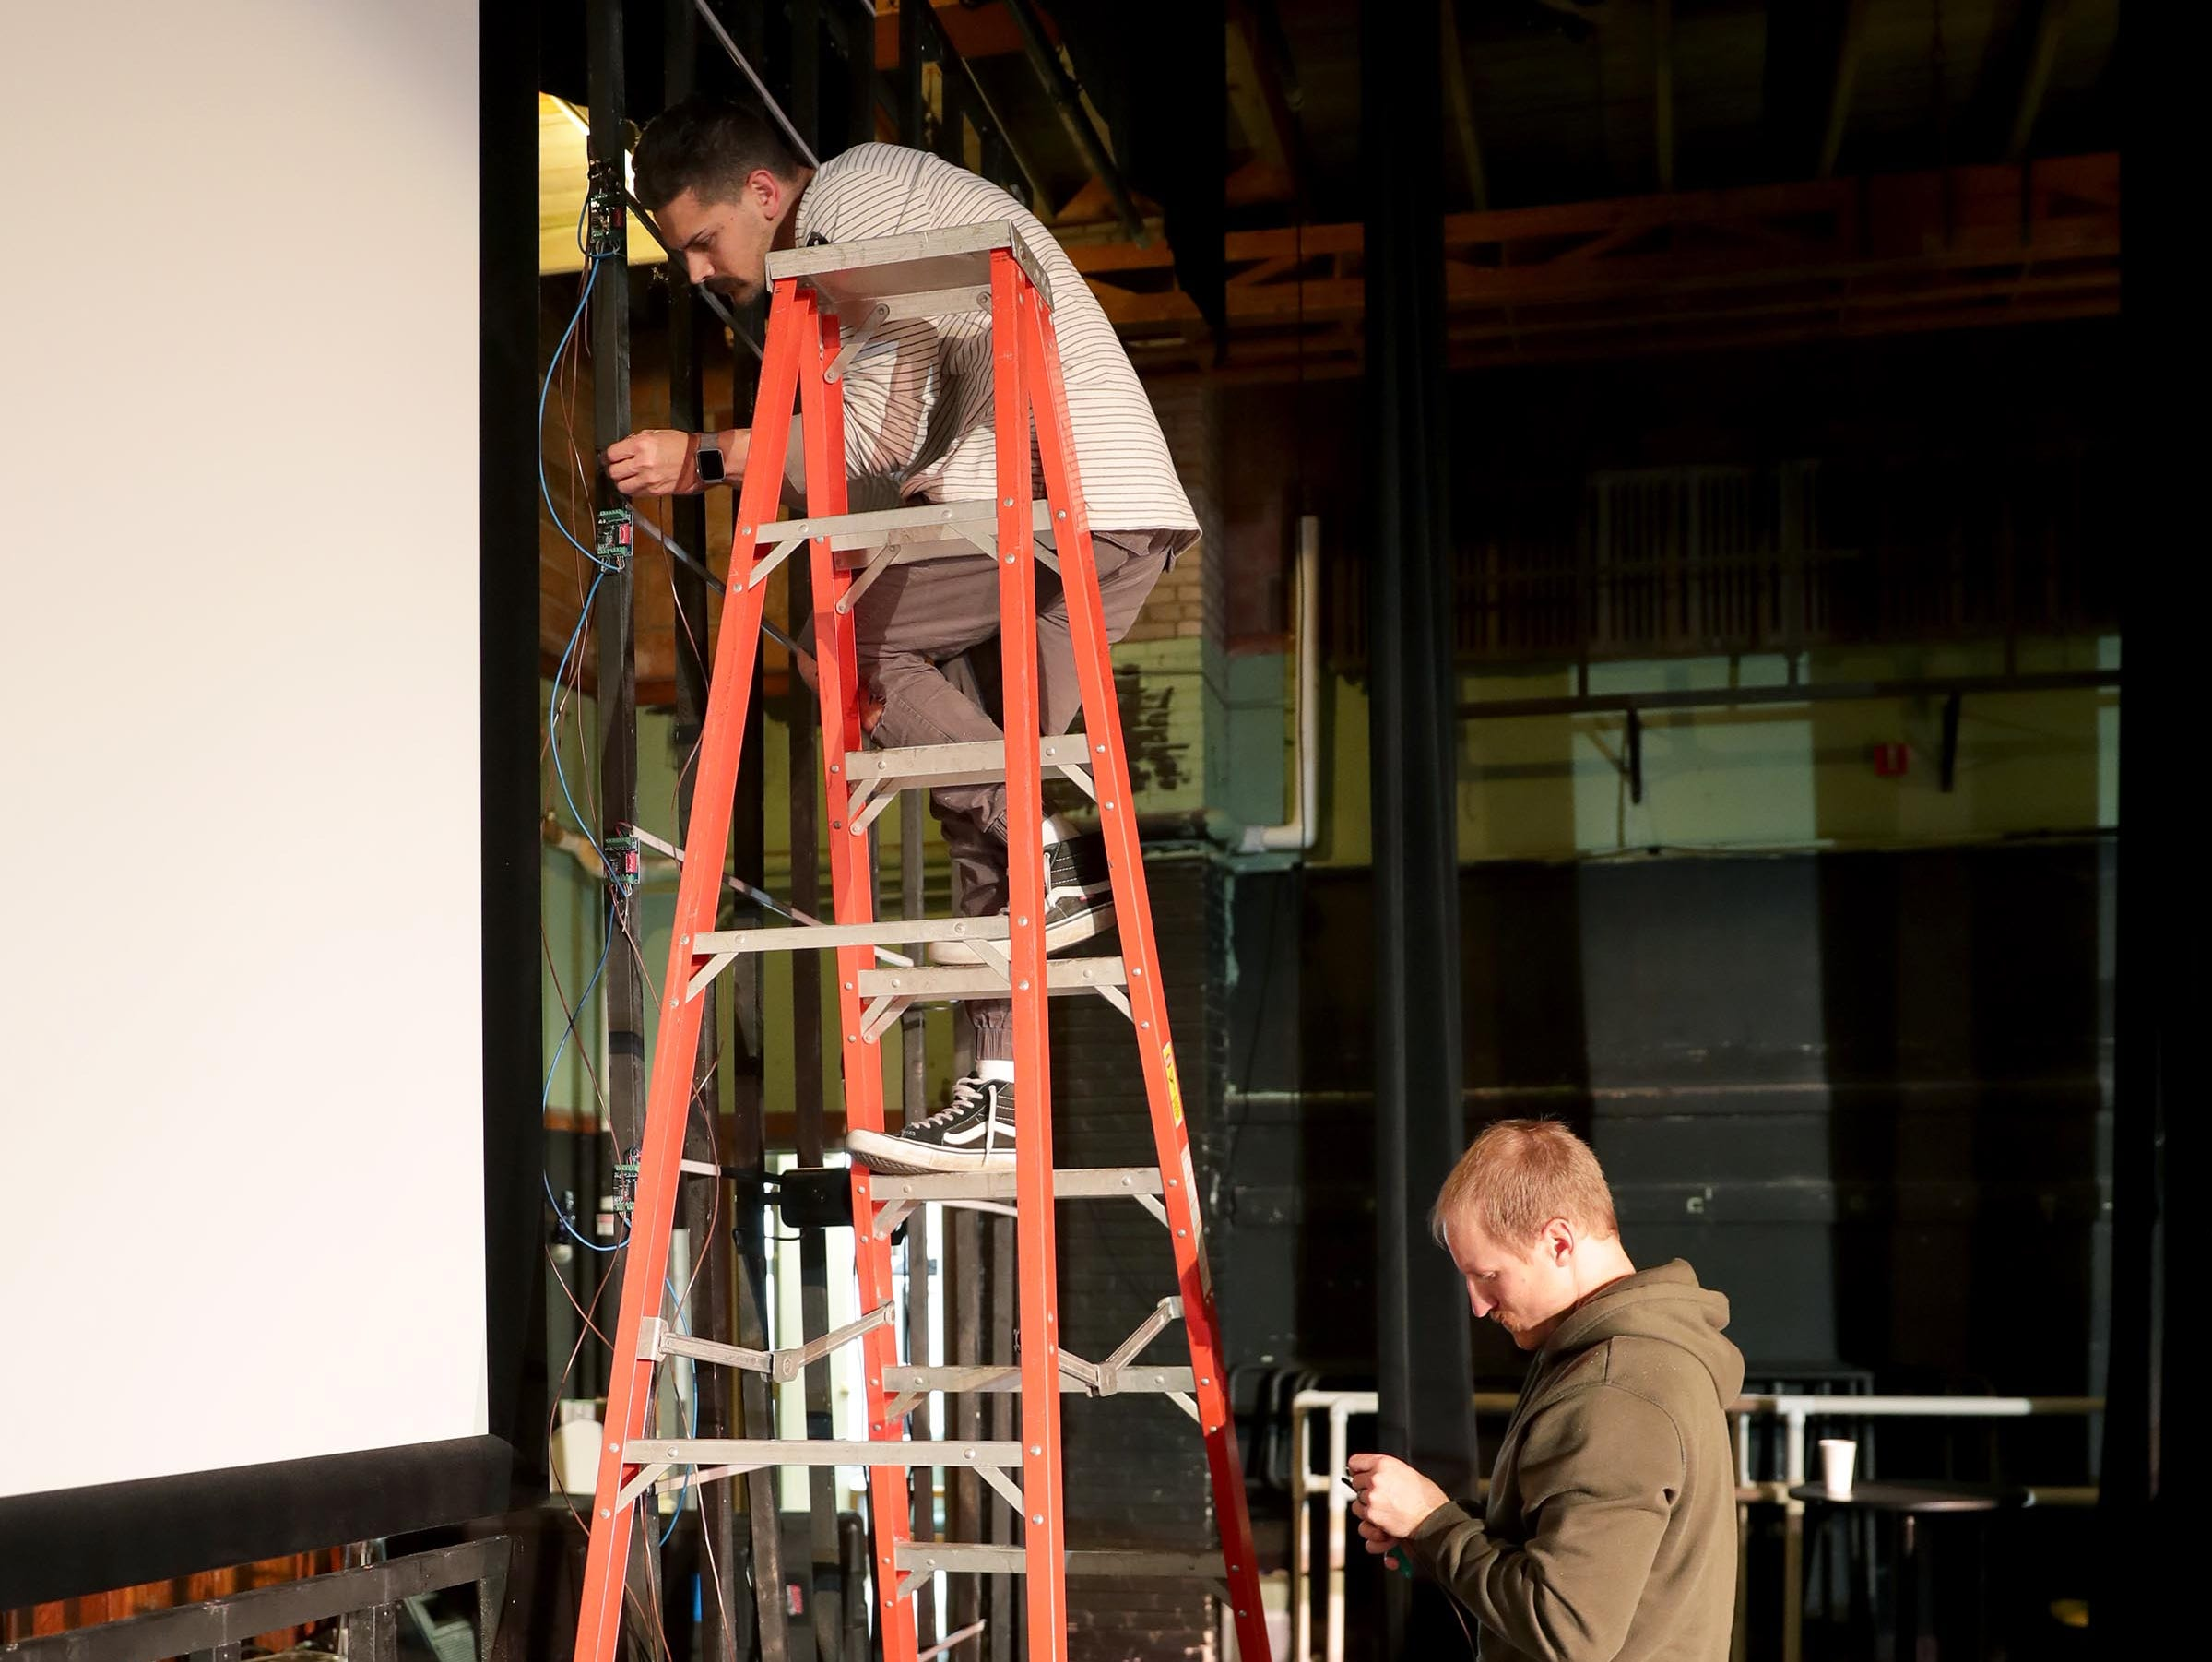 Josh Palasz, upper, Cornerstone Church creative director, and associate pastor Andrew Hess work on hooking up lighting to the stage area at Lincoln Center of the Arts on East Knapp Street where they will host their Easter Sunday service.